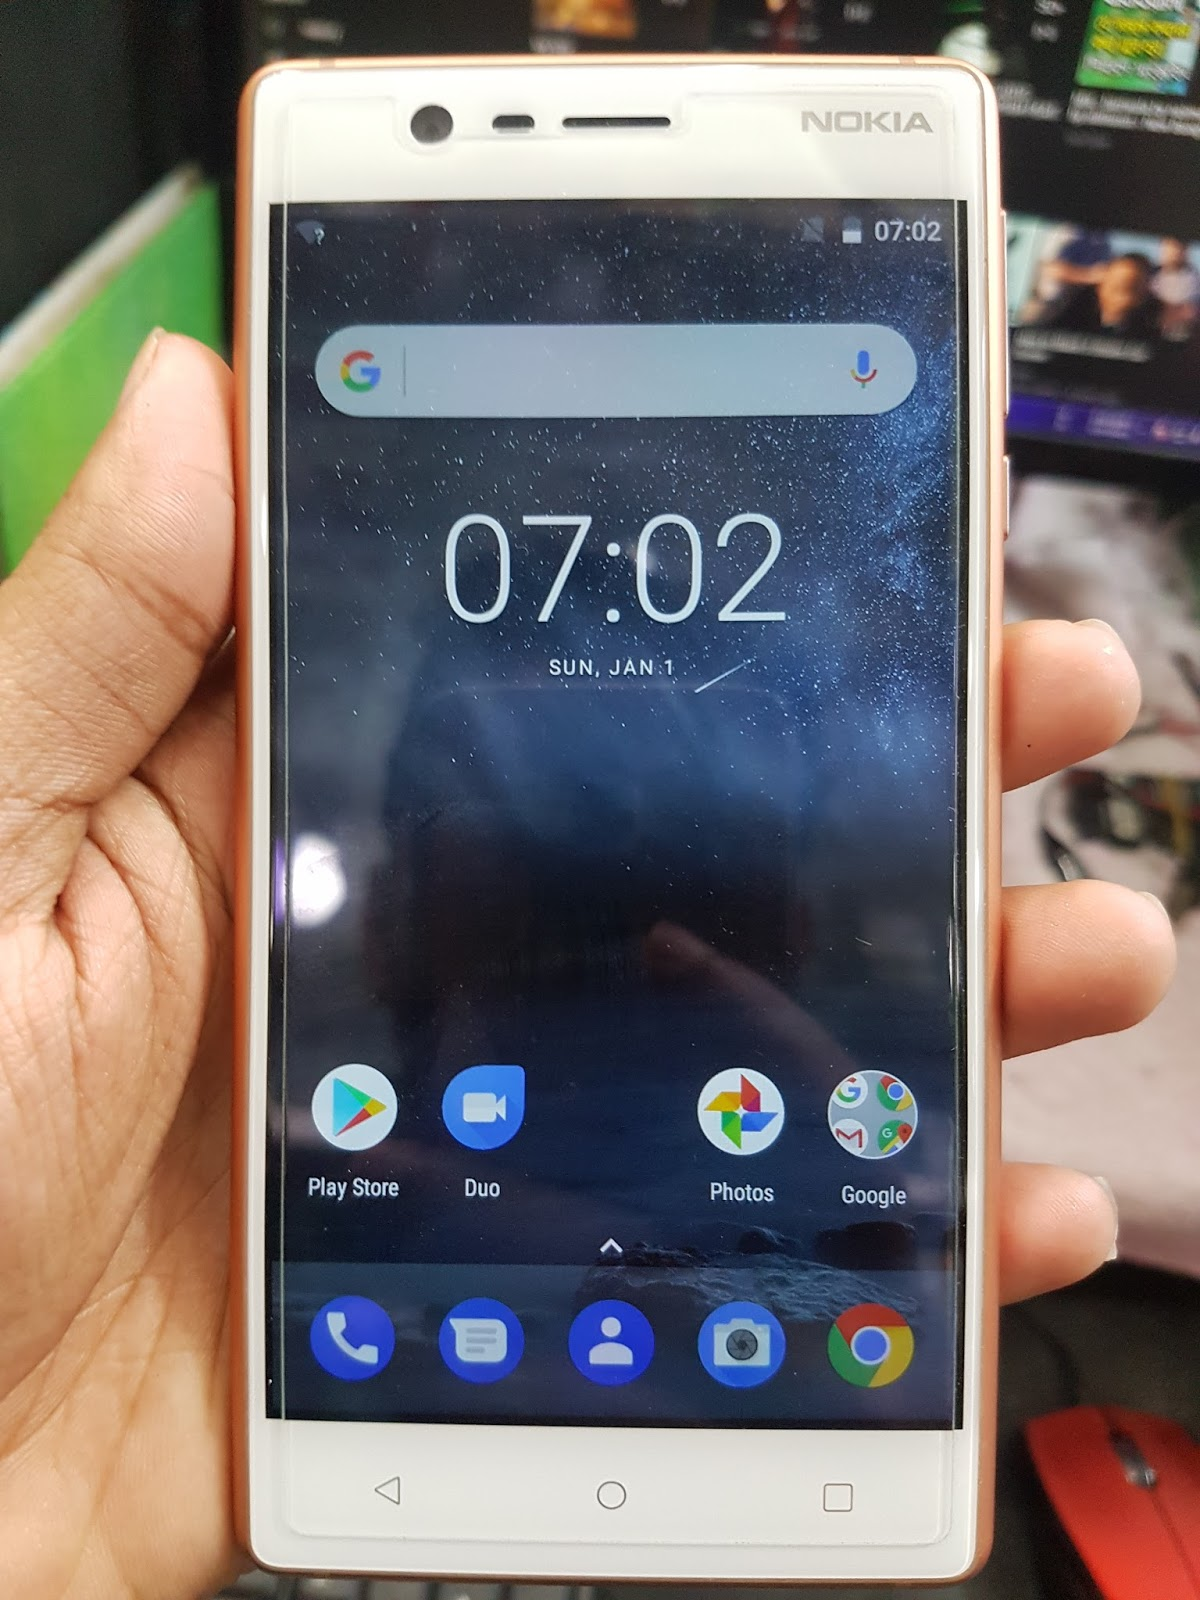 GSM RAJU BD: NOKIA 3 TA-1032 MT6737M ONLY VIBRATE DEAD BOOT RECOVERY